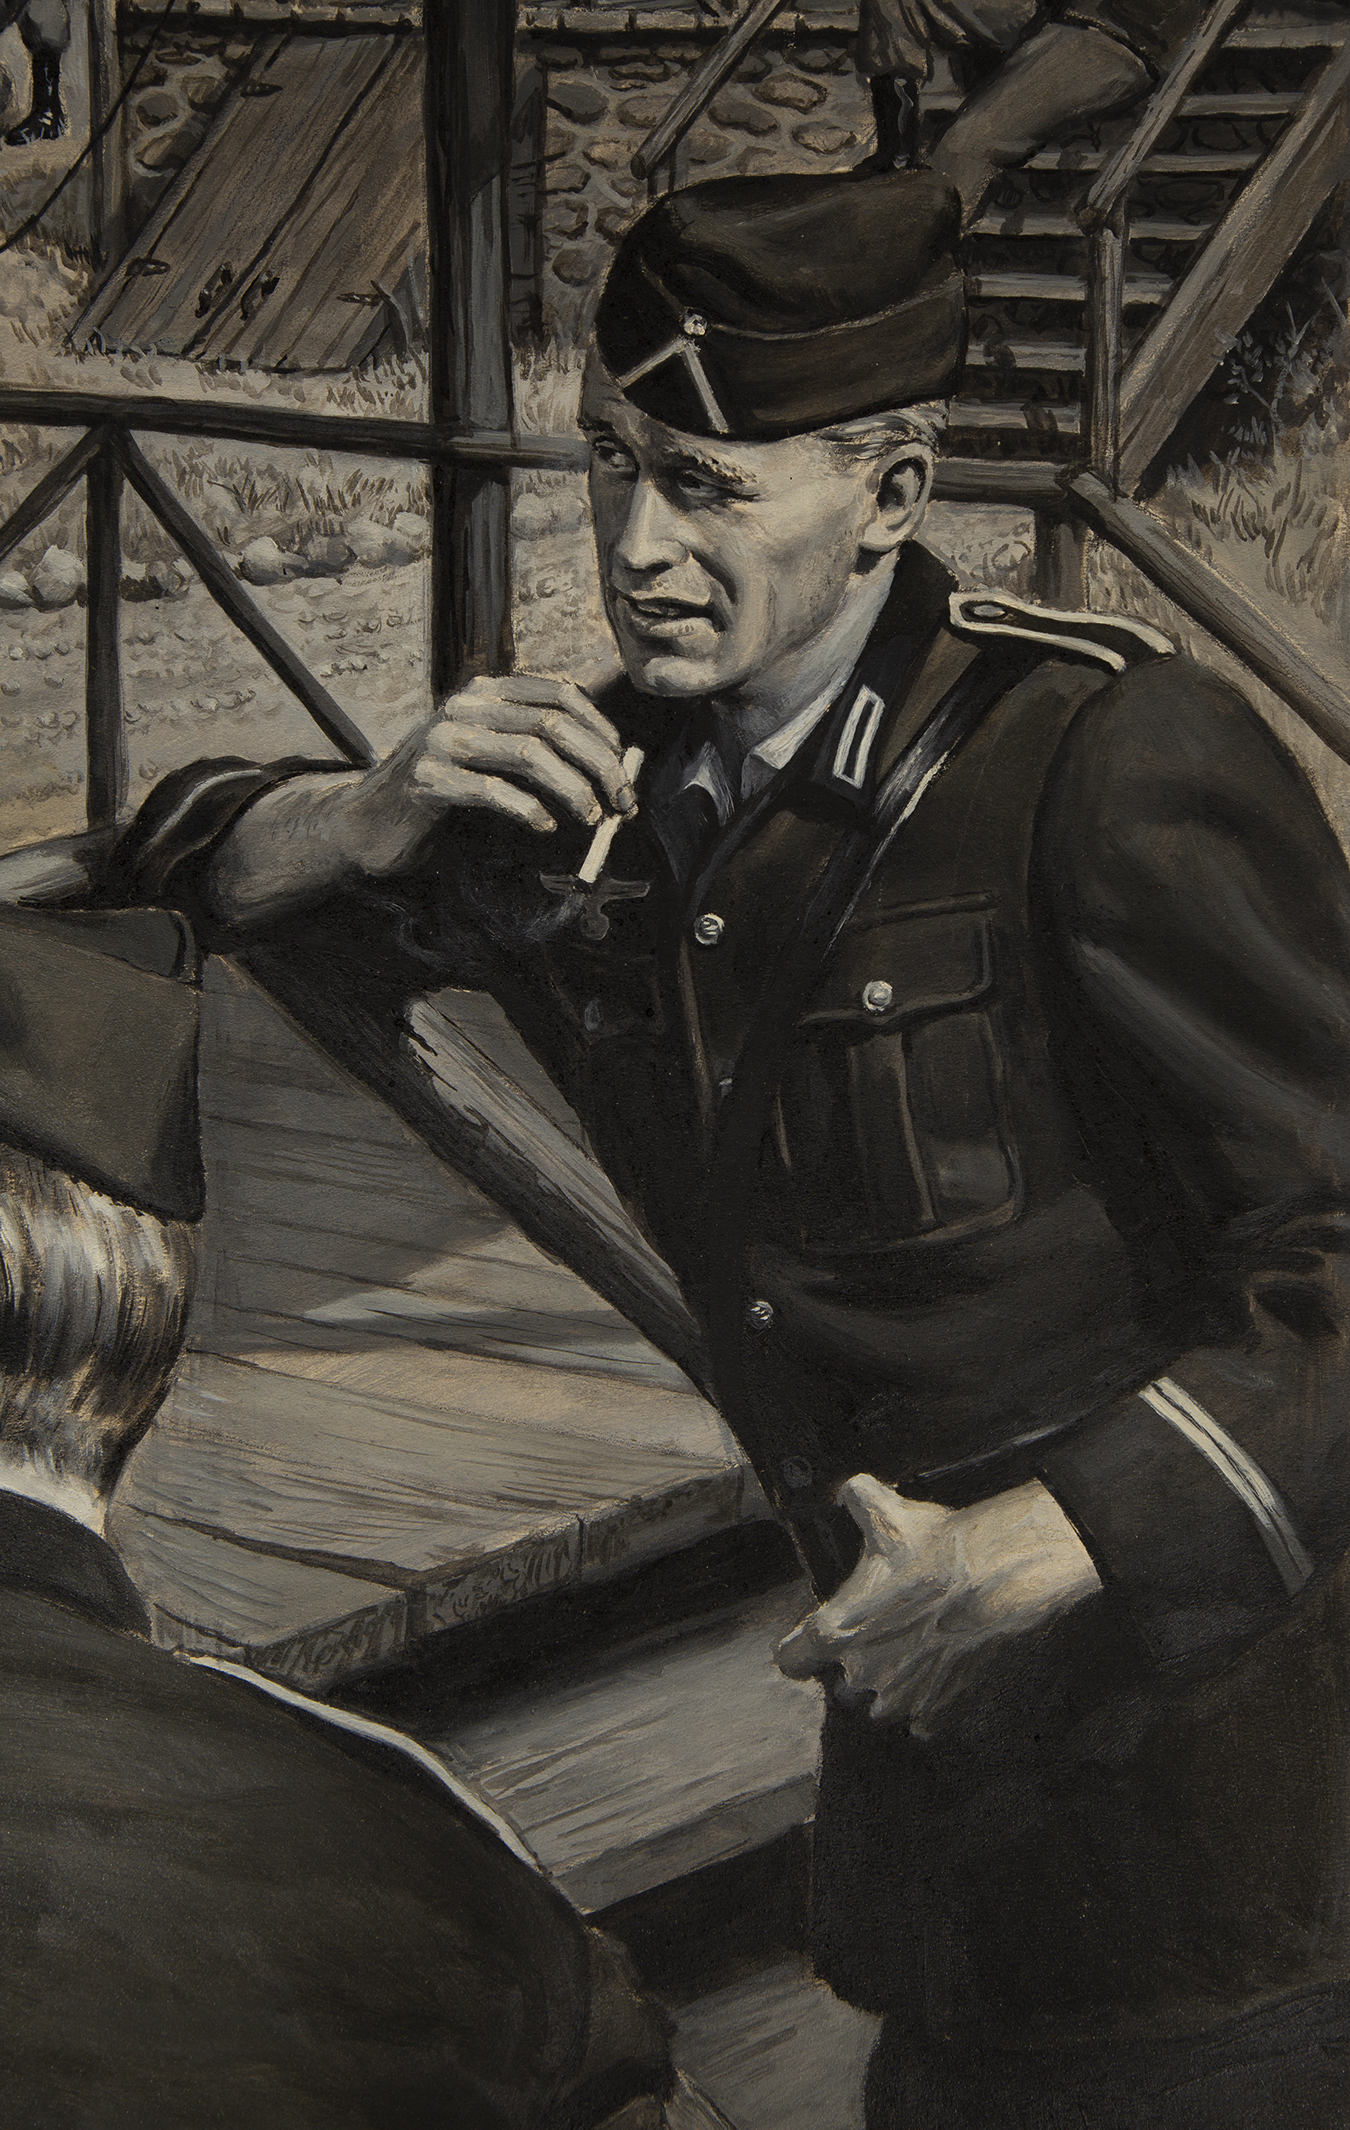 A leering soldier smoking a cigarette